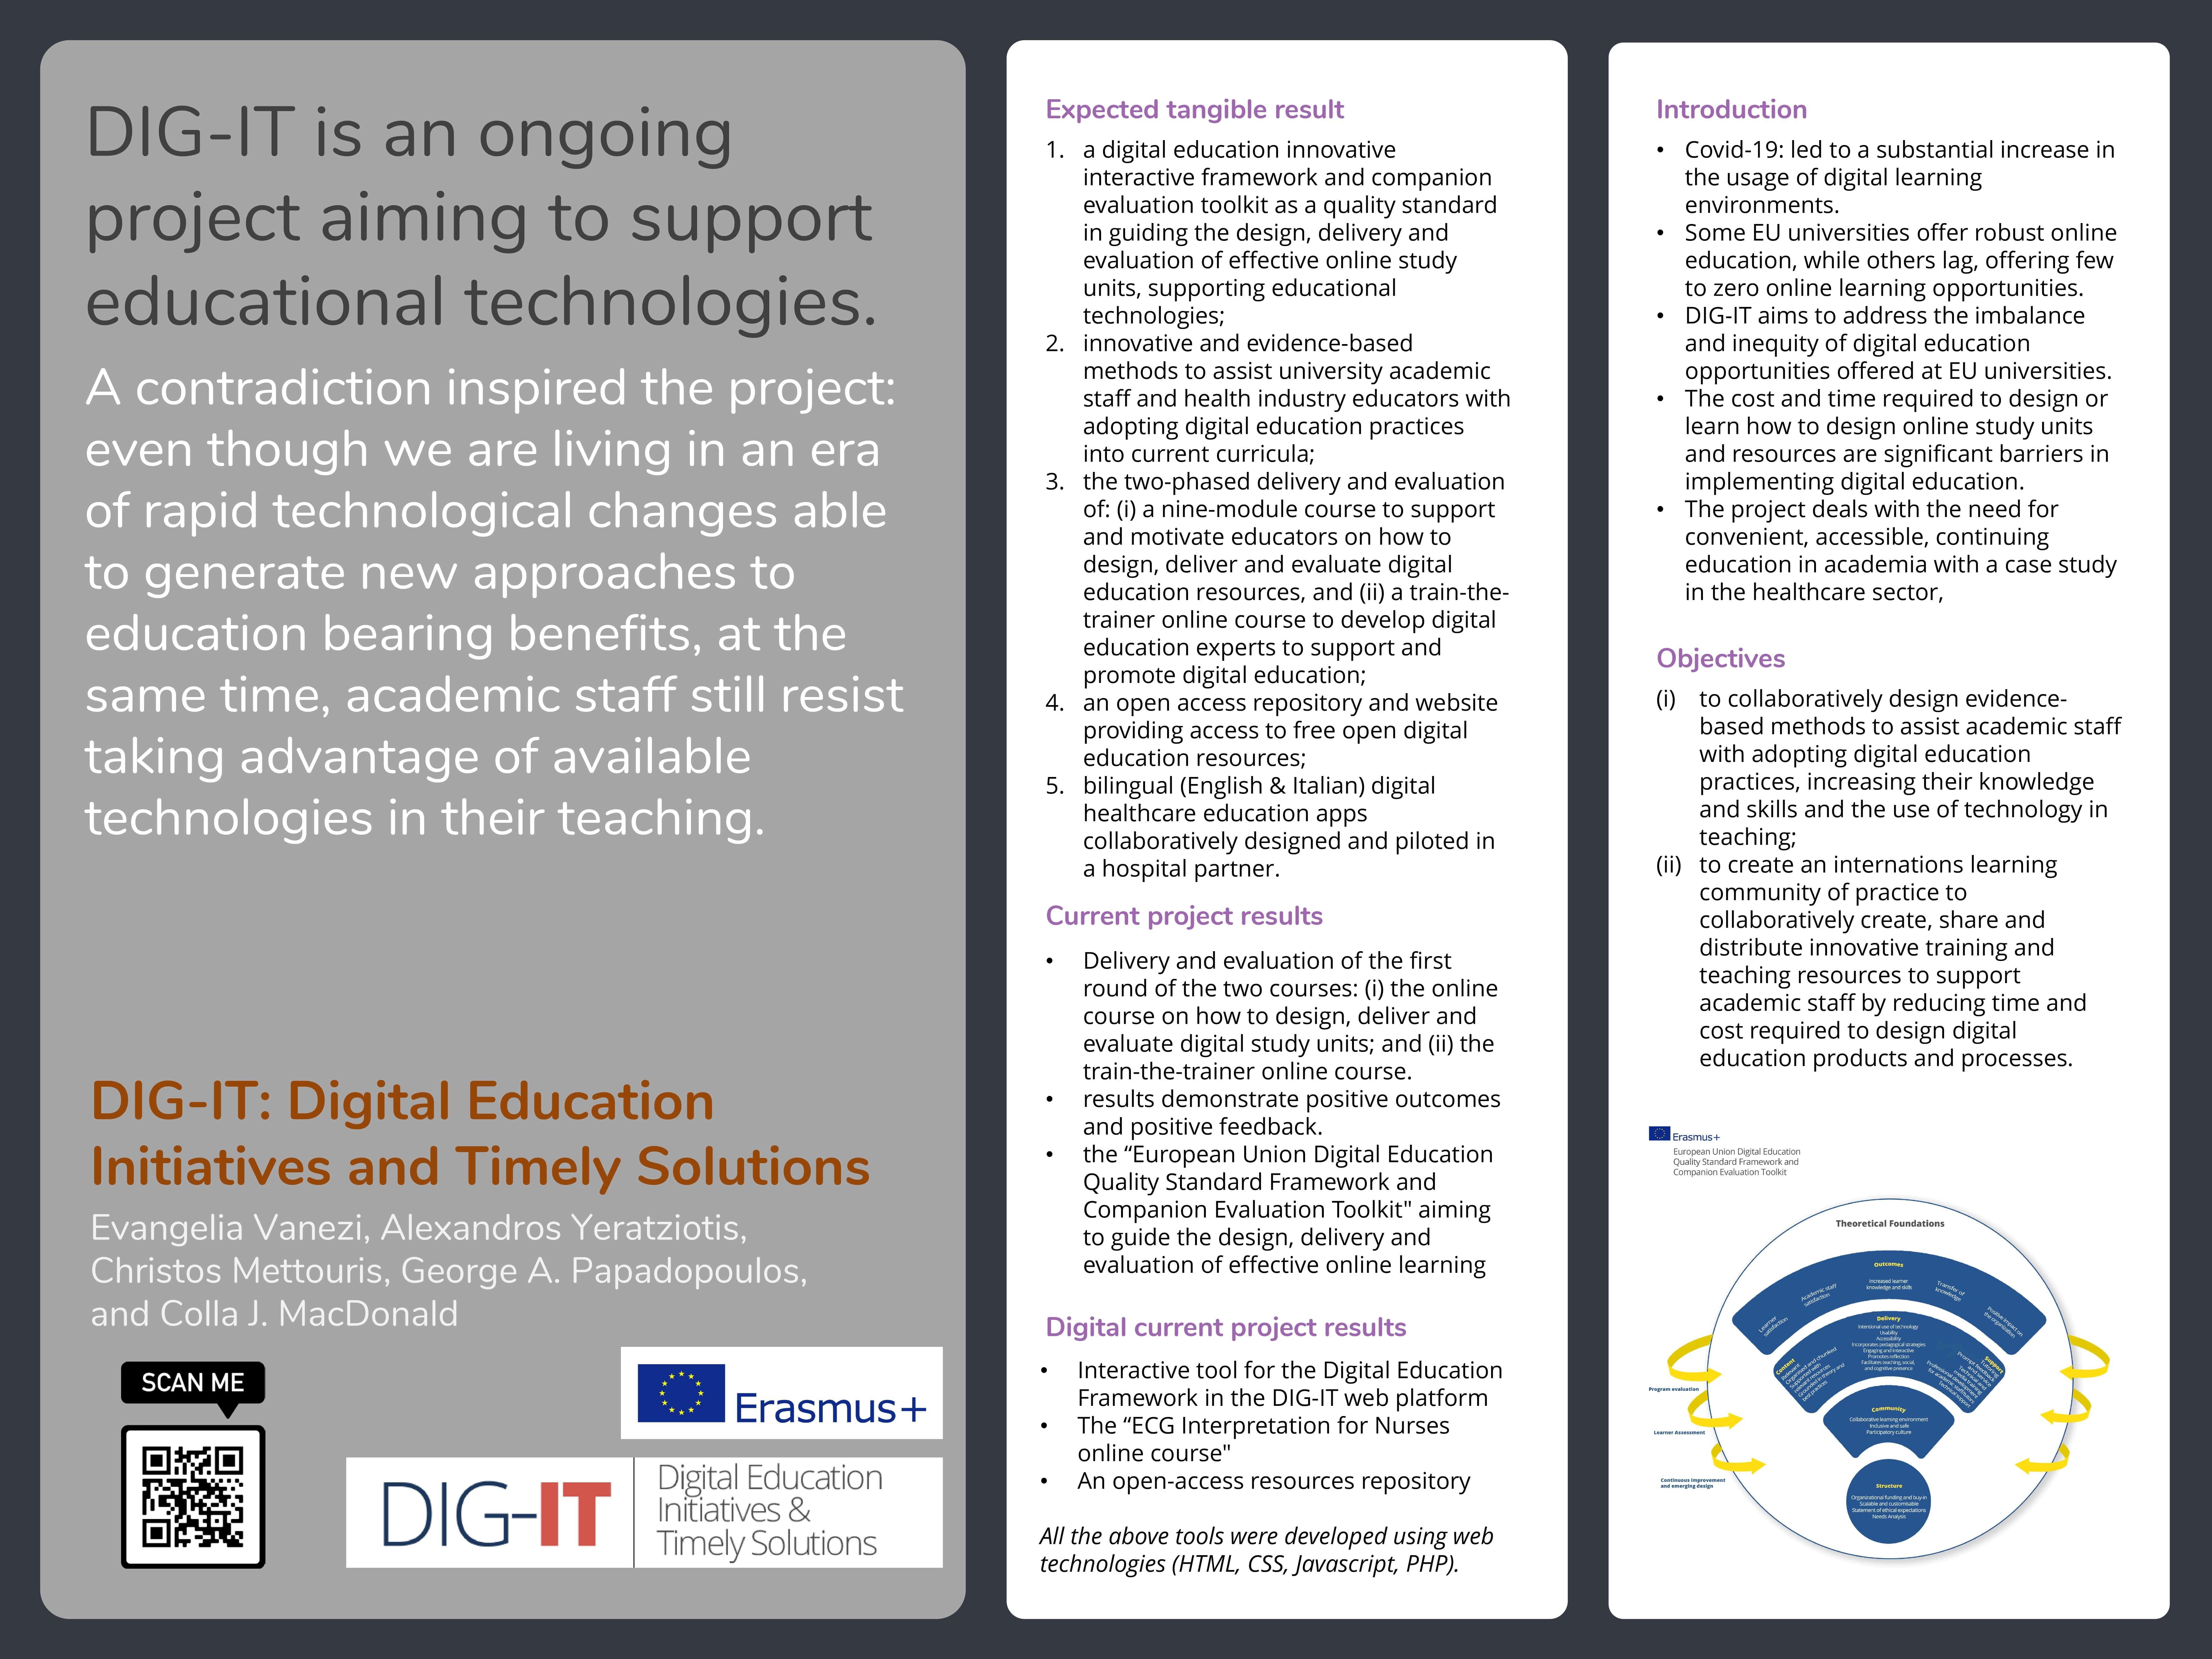 DIG-IT: Digital Education Initiatives and Timely Solutions